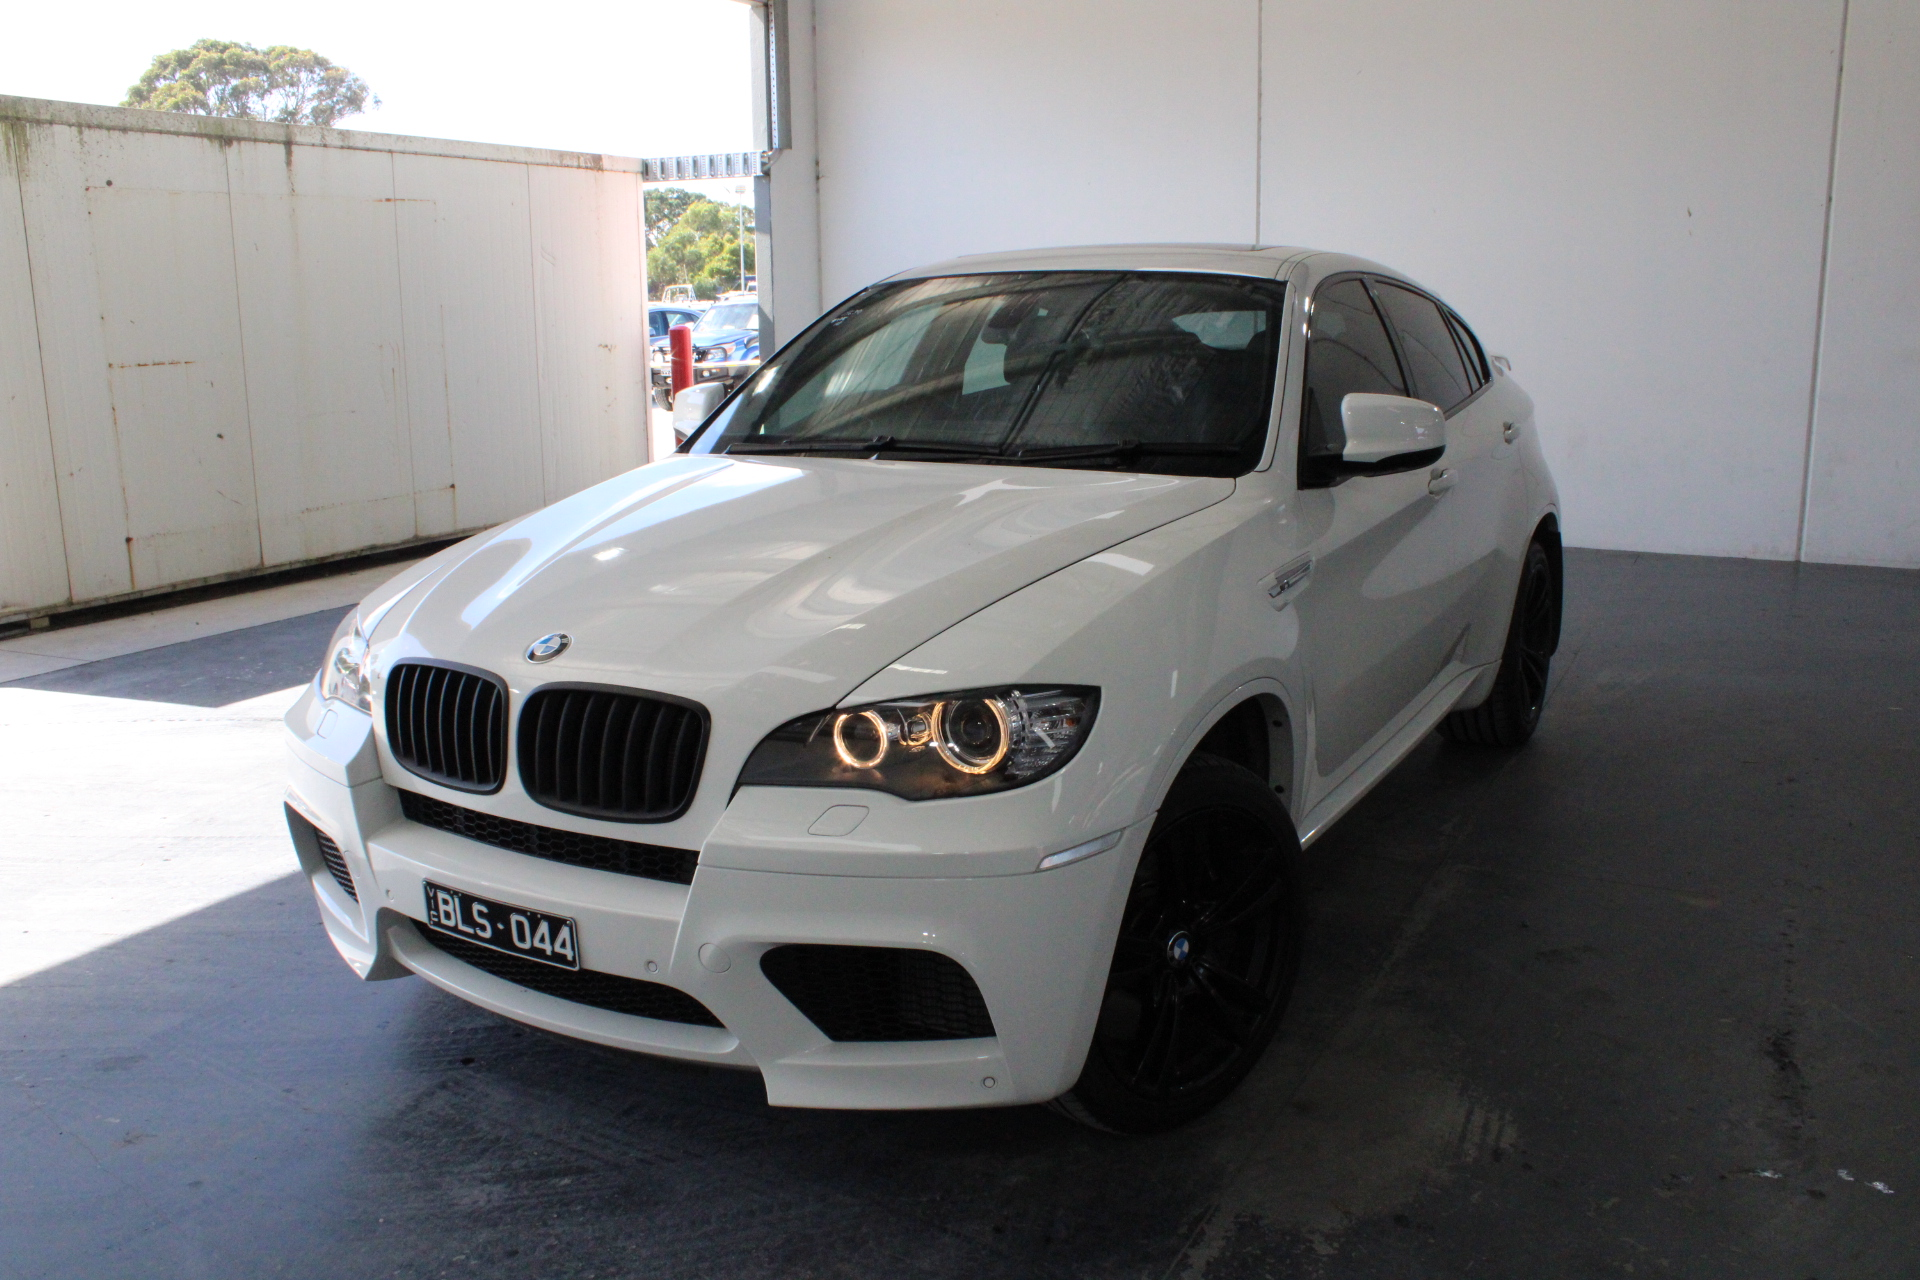 2009 BMW X6 M E71 Automatic Coupe WOVR+Insp